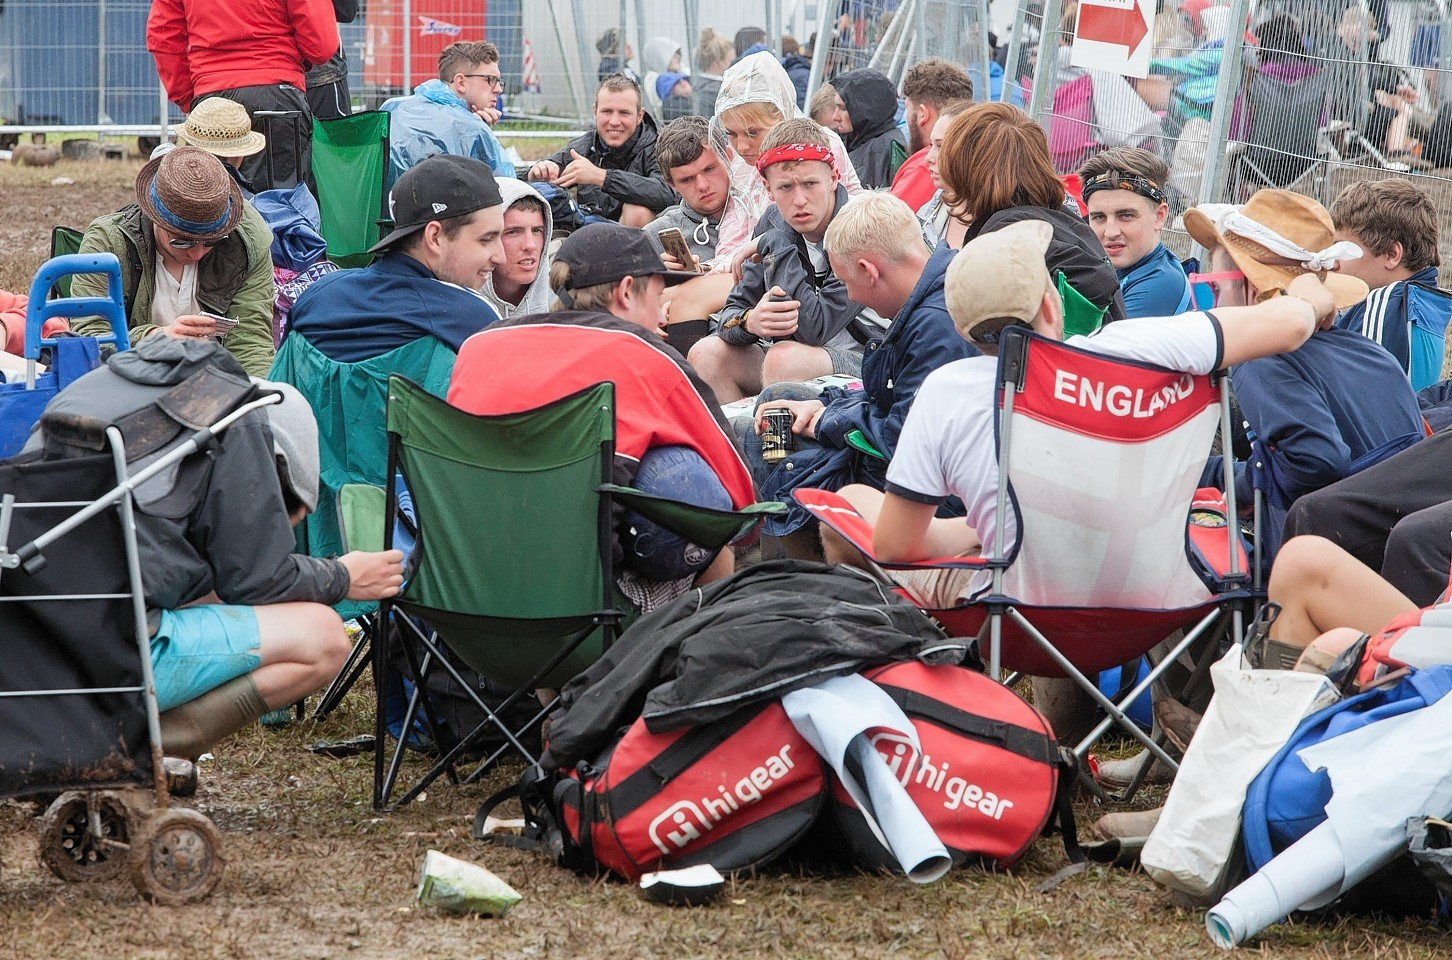 People pack up and leave T in the Park after three days of partying